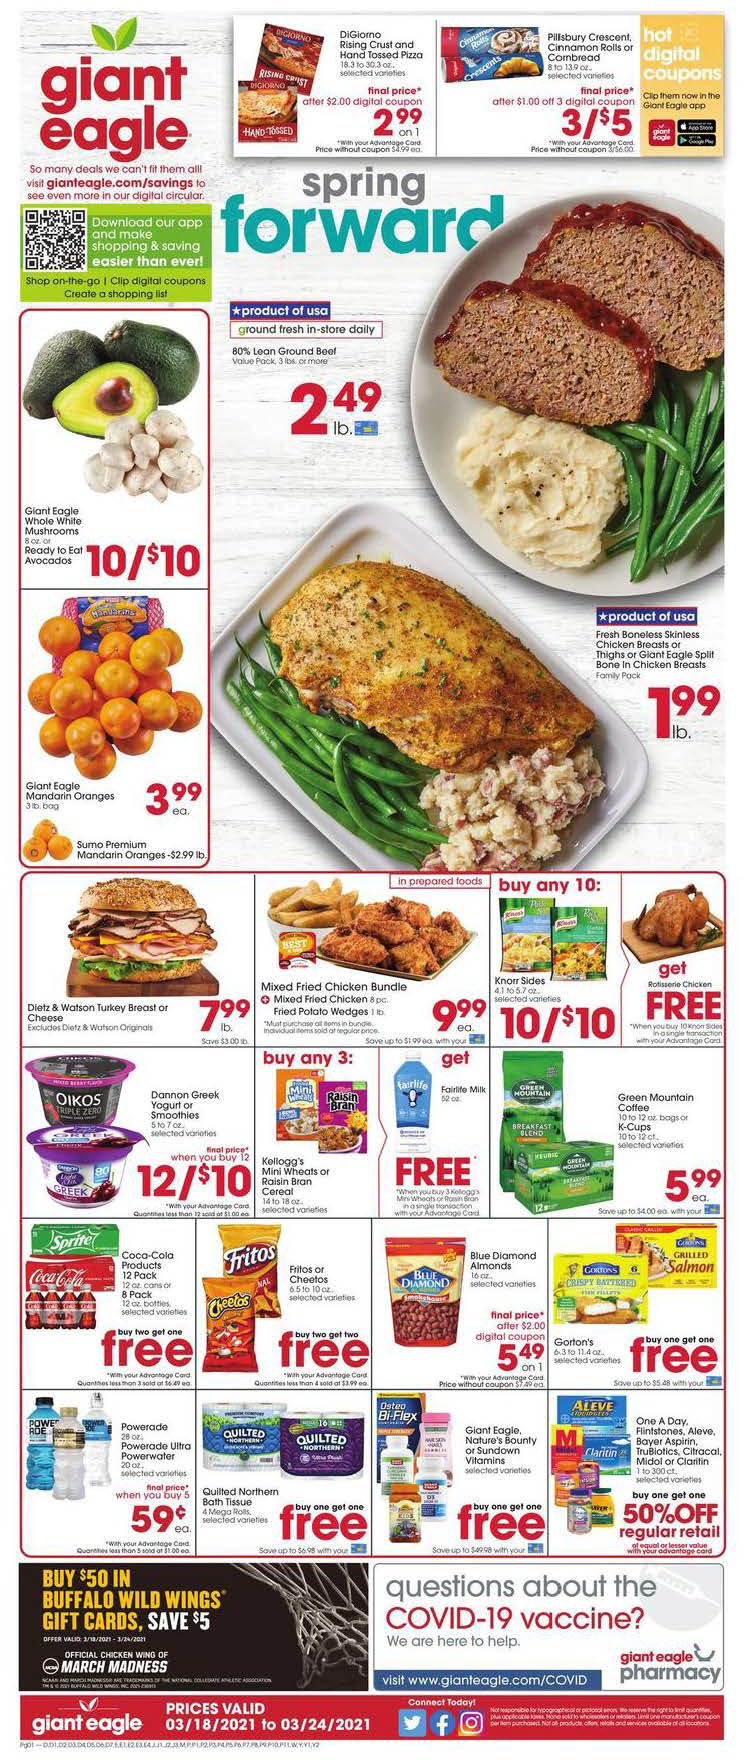 Giant Eagle Weekly Ad (3/18/21 - 3/24/21) Preview